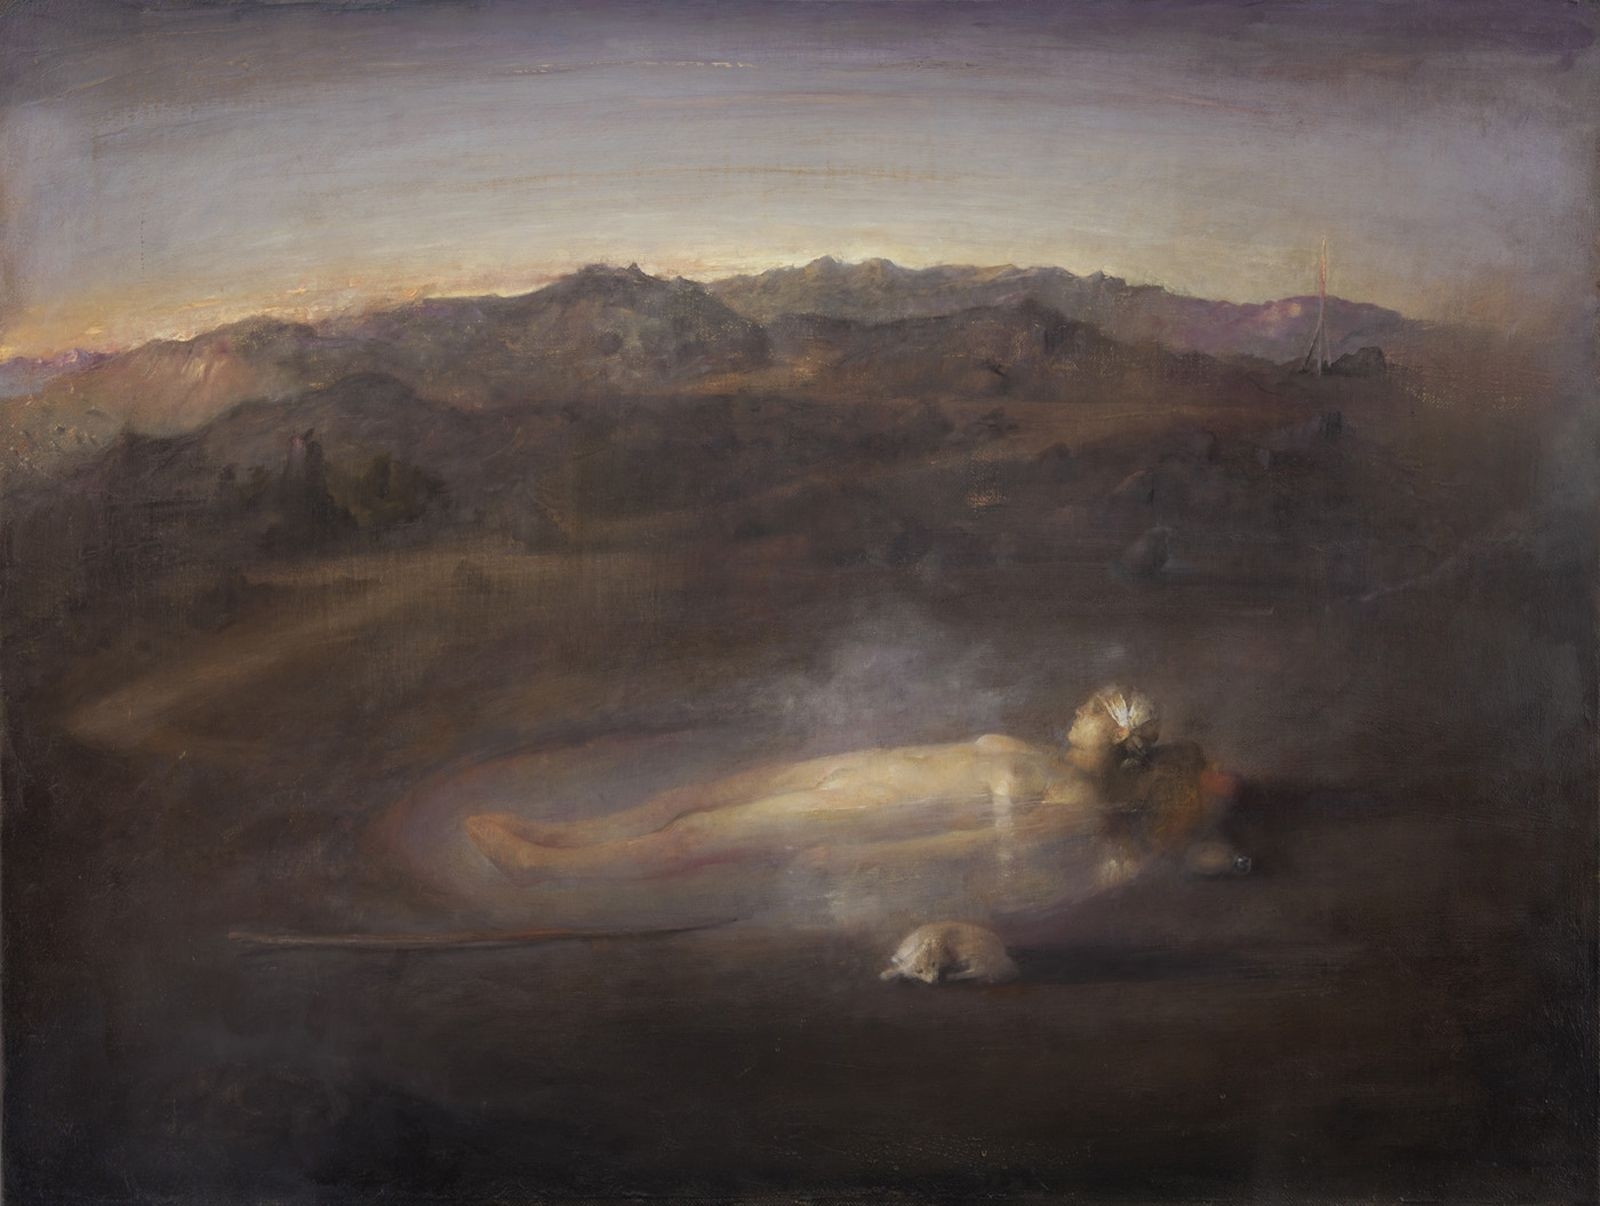 Odd Nerdrum, Icelandic Bath, oil on canvas, 48 x 36 1/4 inches